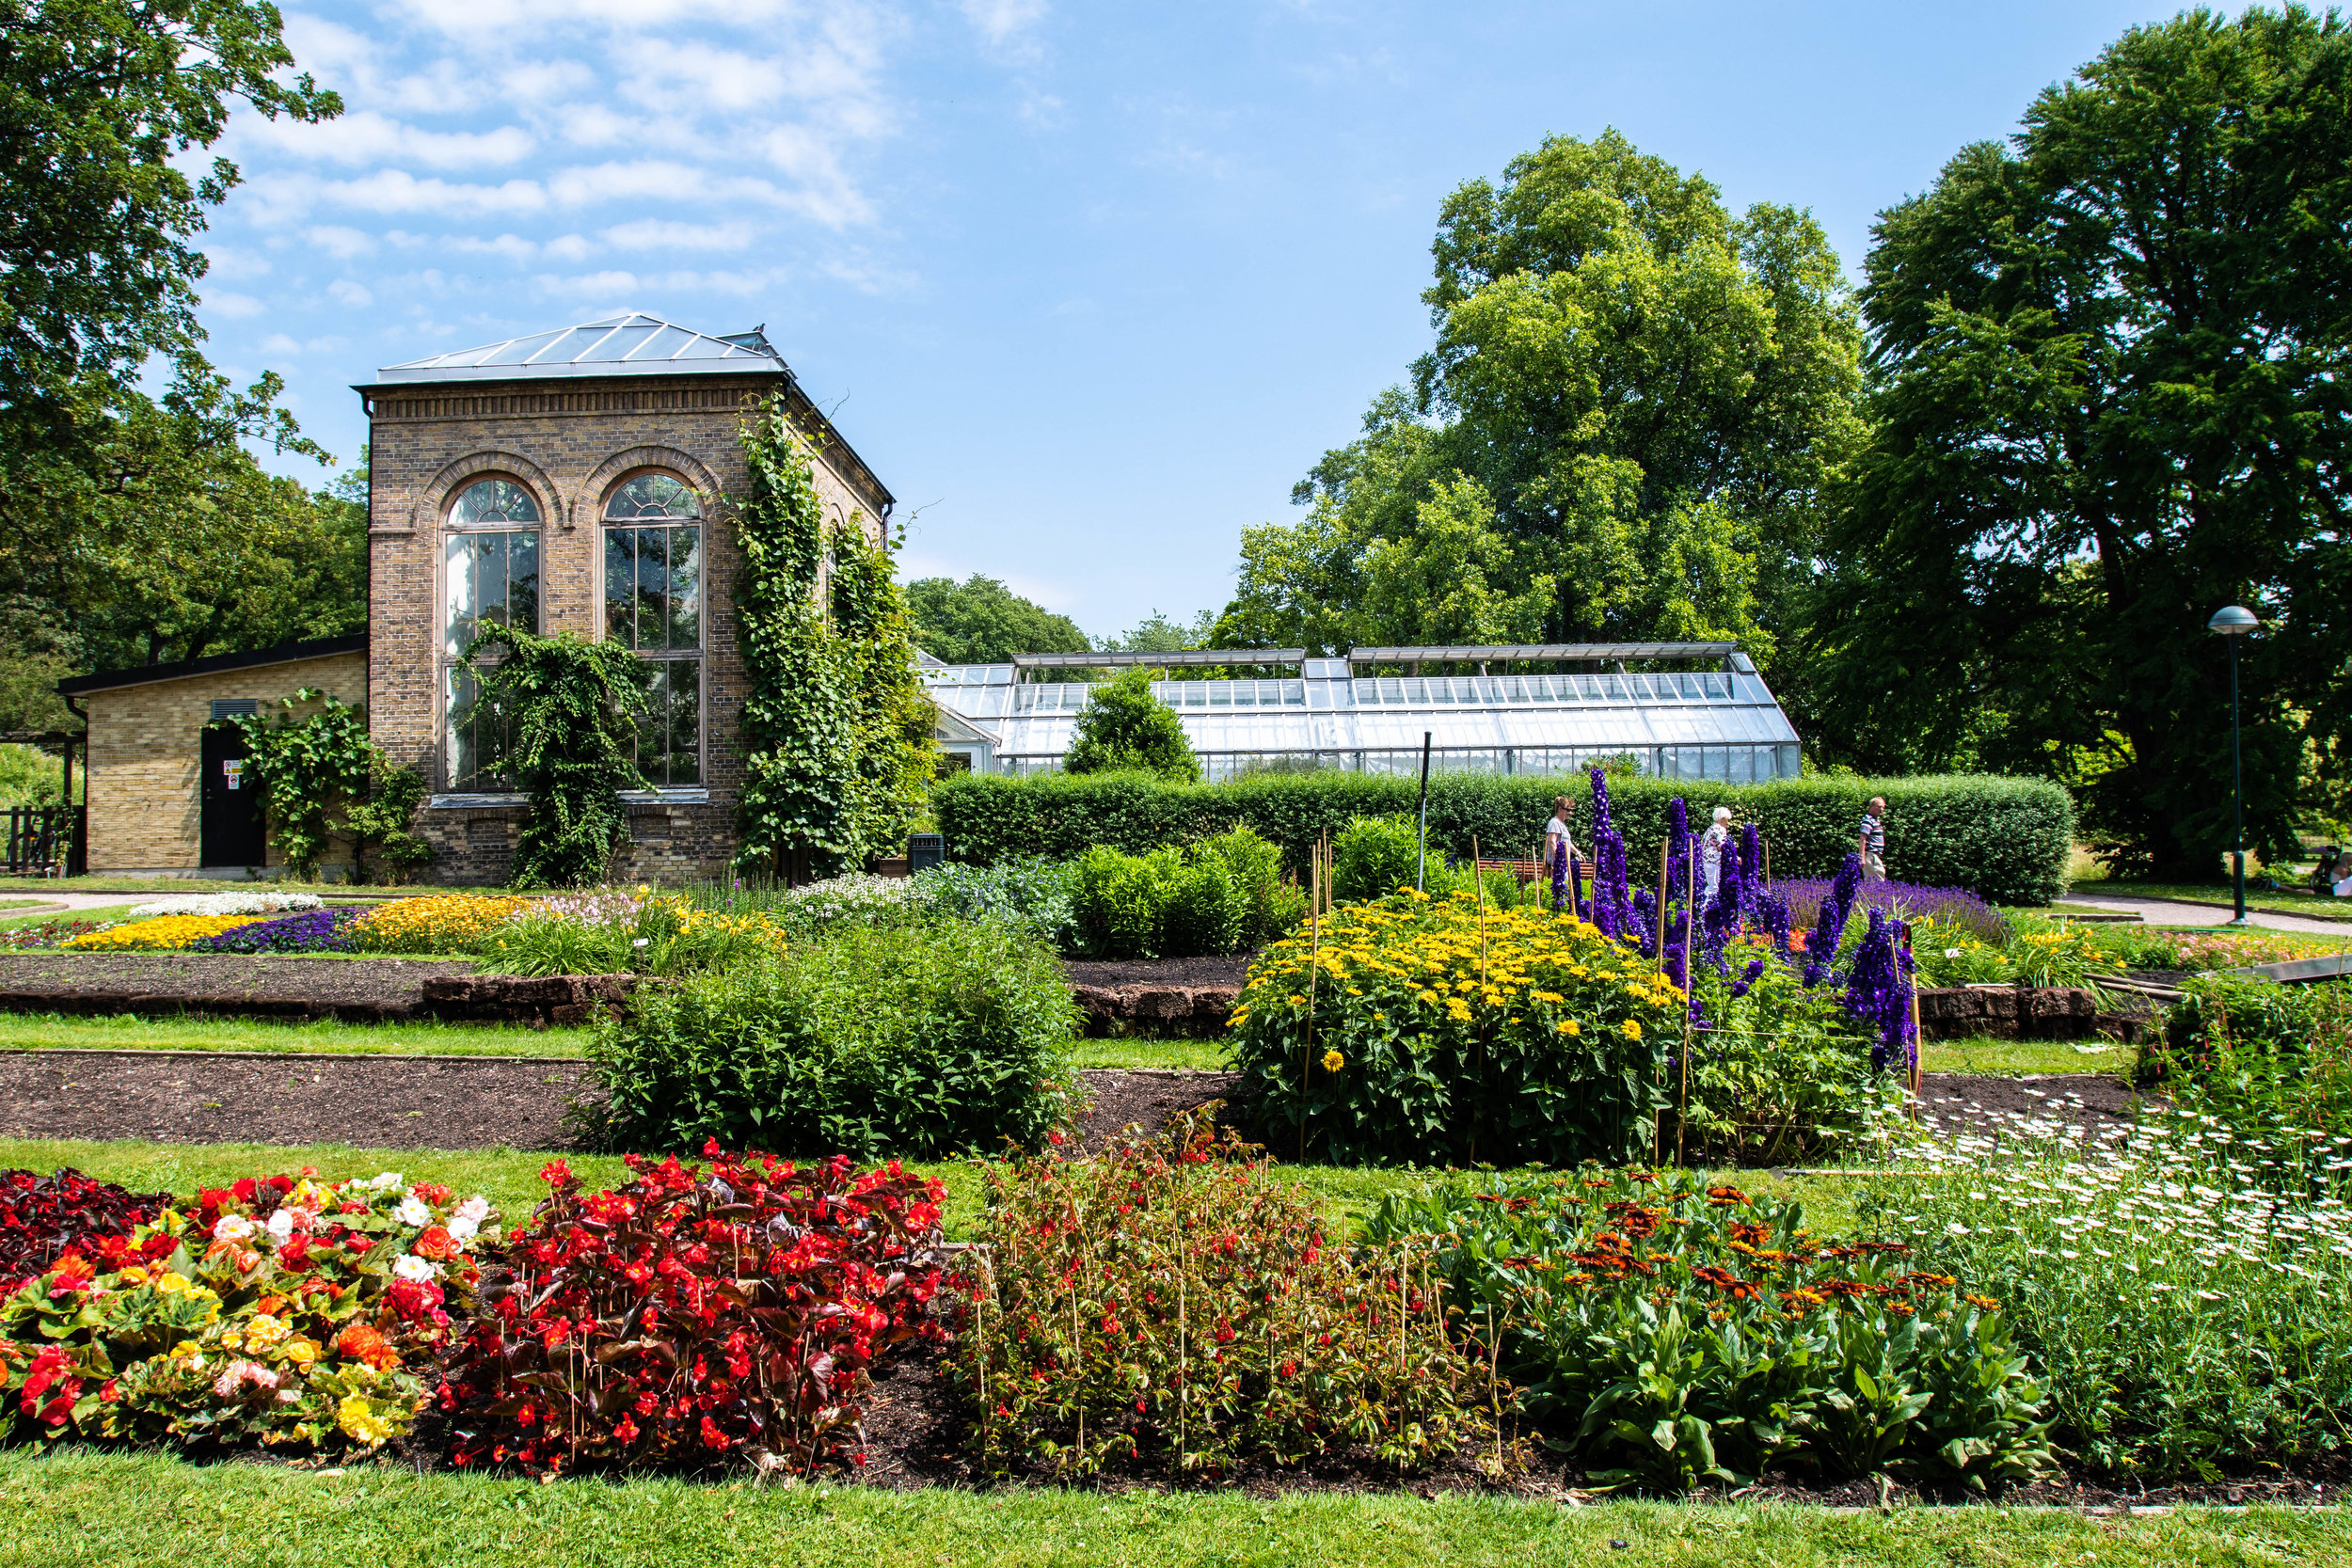 Botanical garden is definitely a must visit while in Lund.